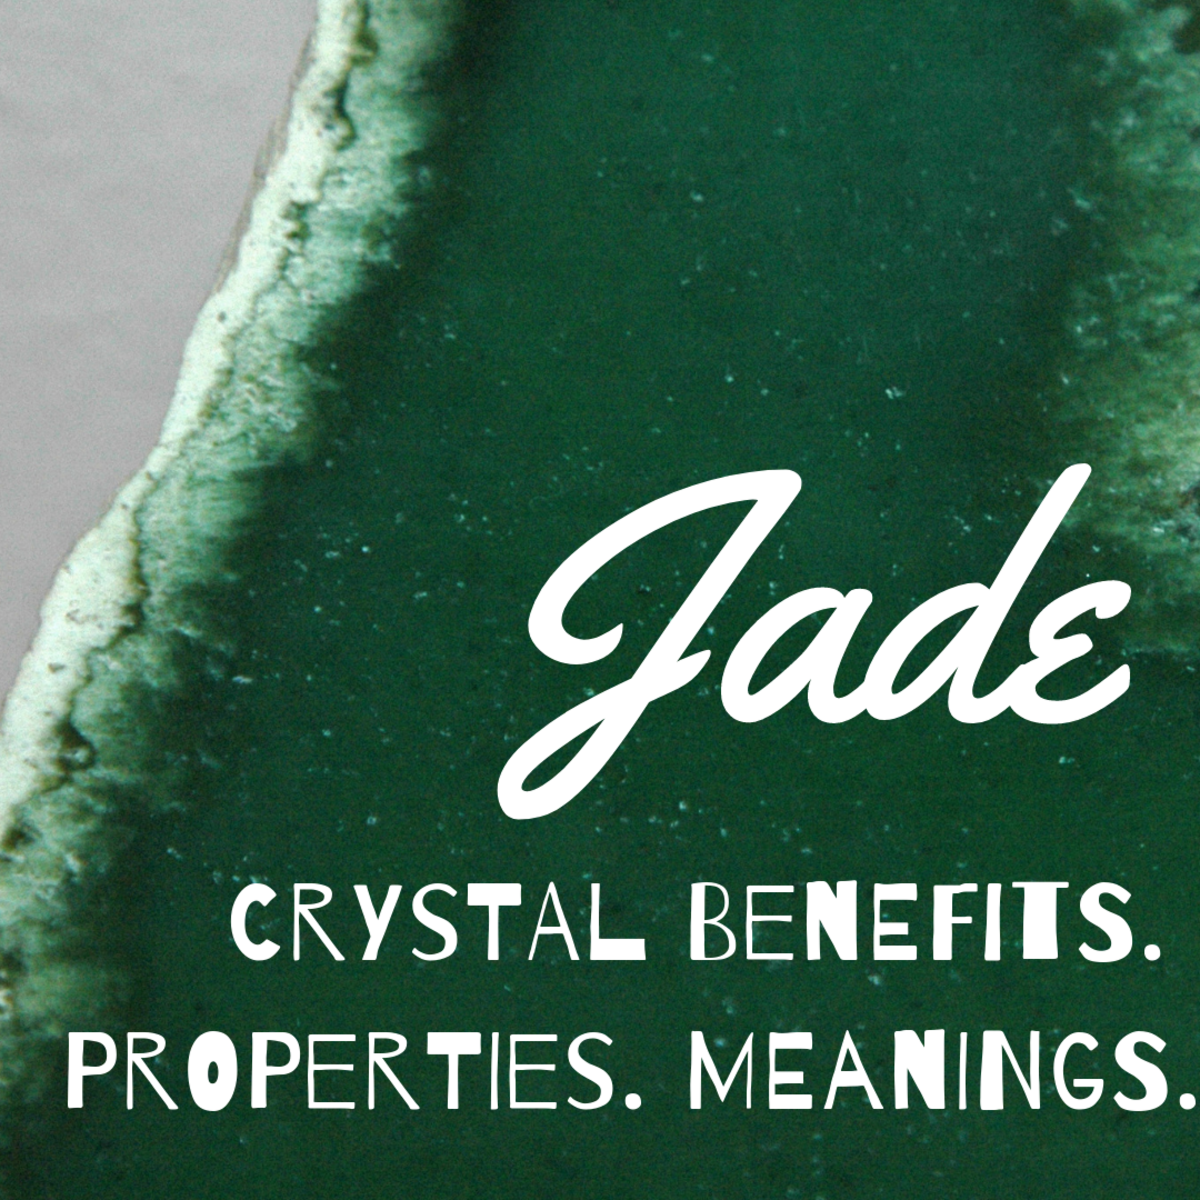 Crystal Healing: Green Jade Stone Benefits, Properties, and Meaning